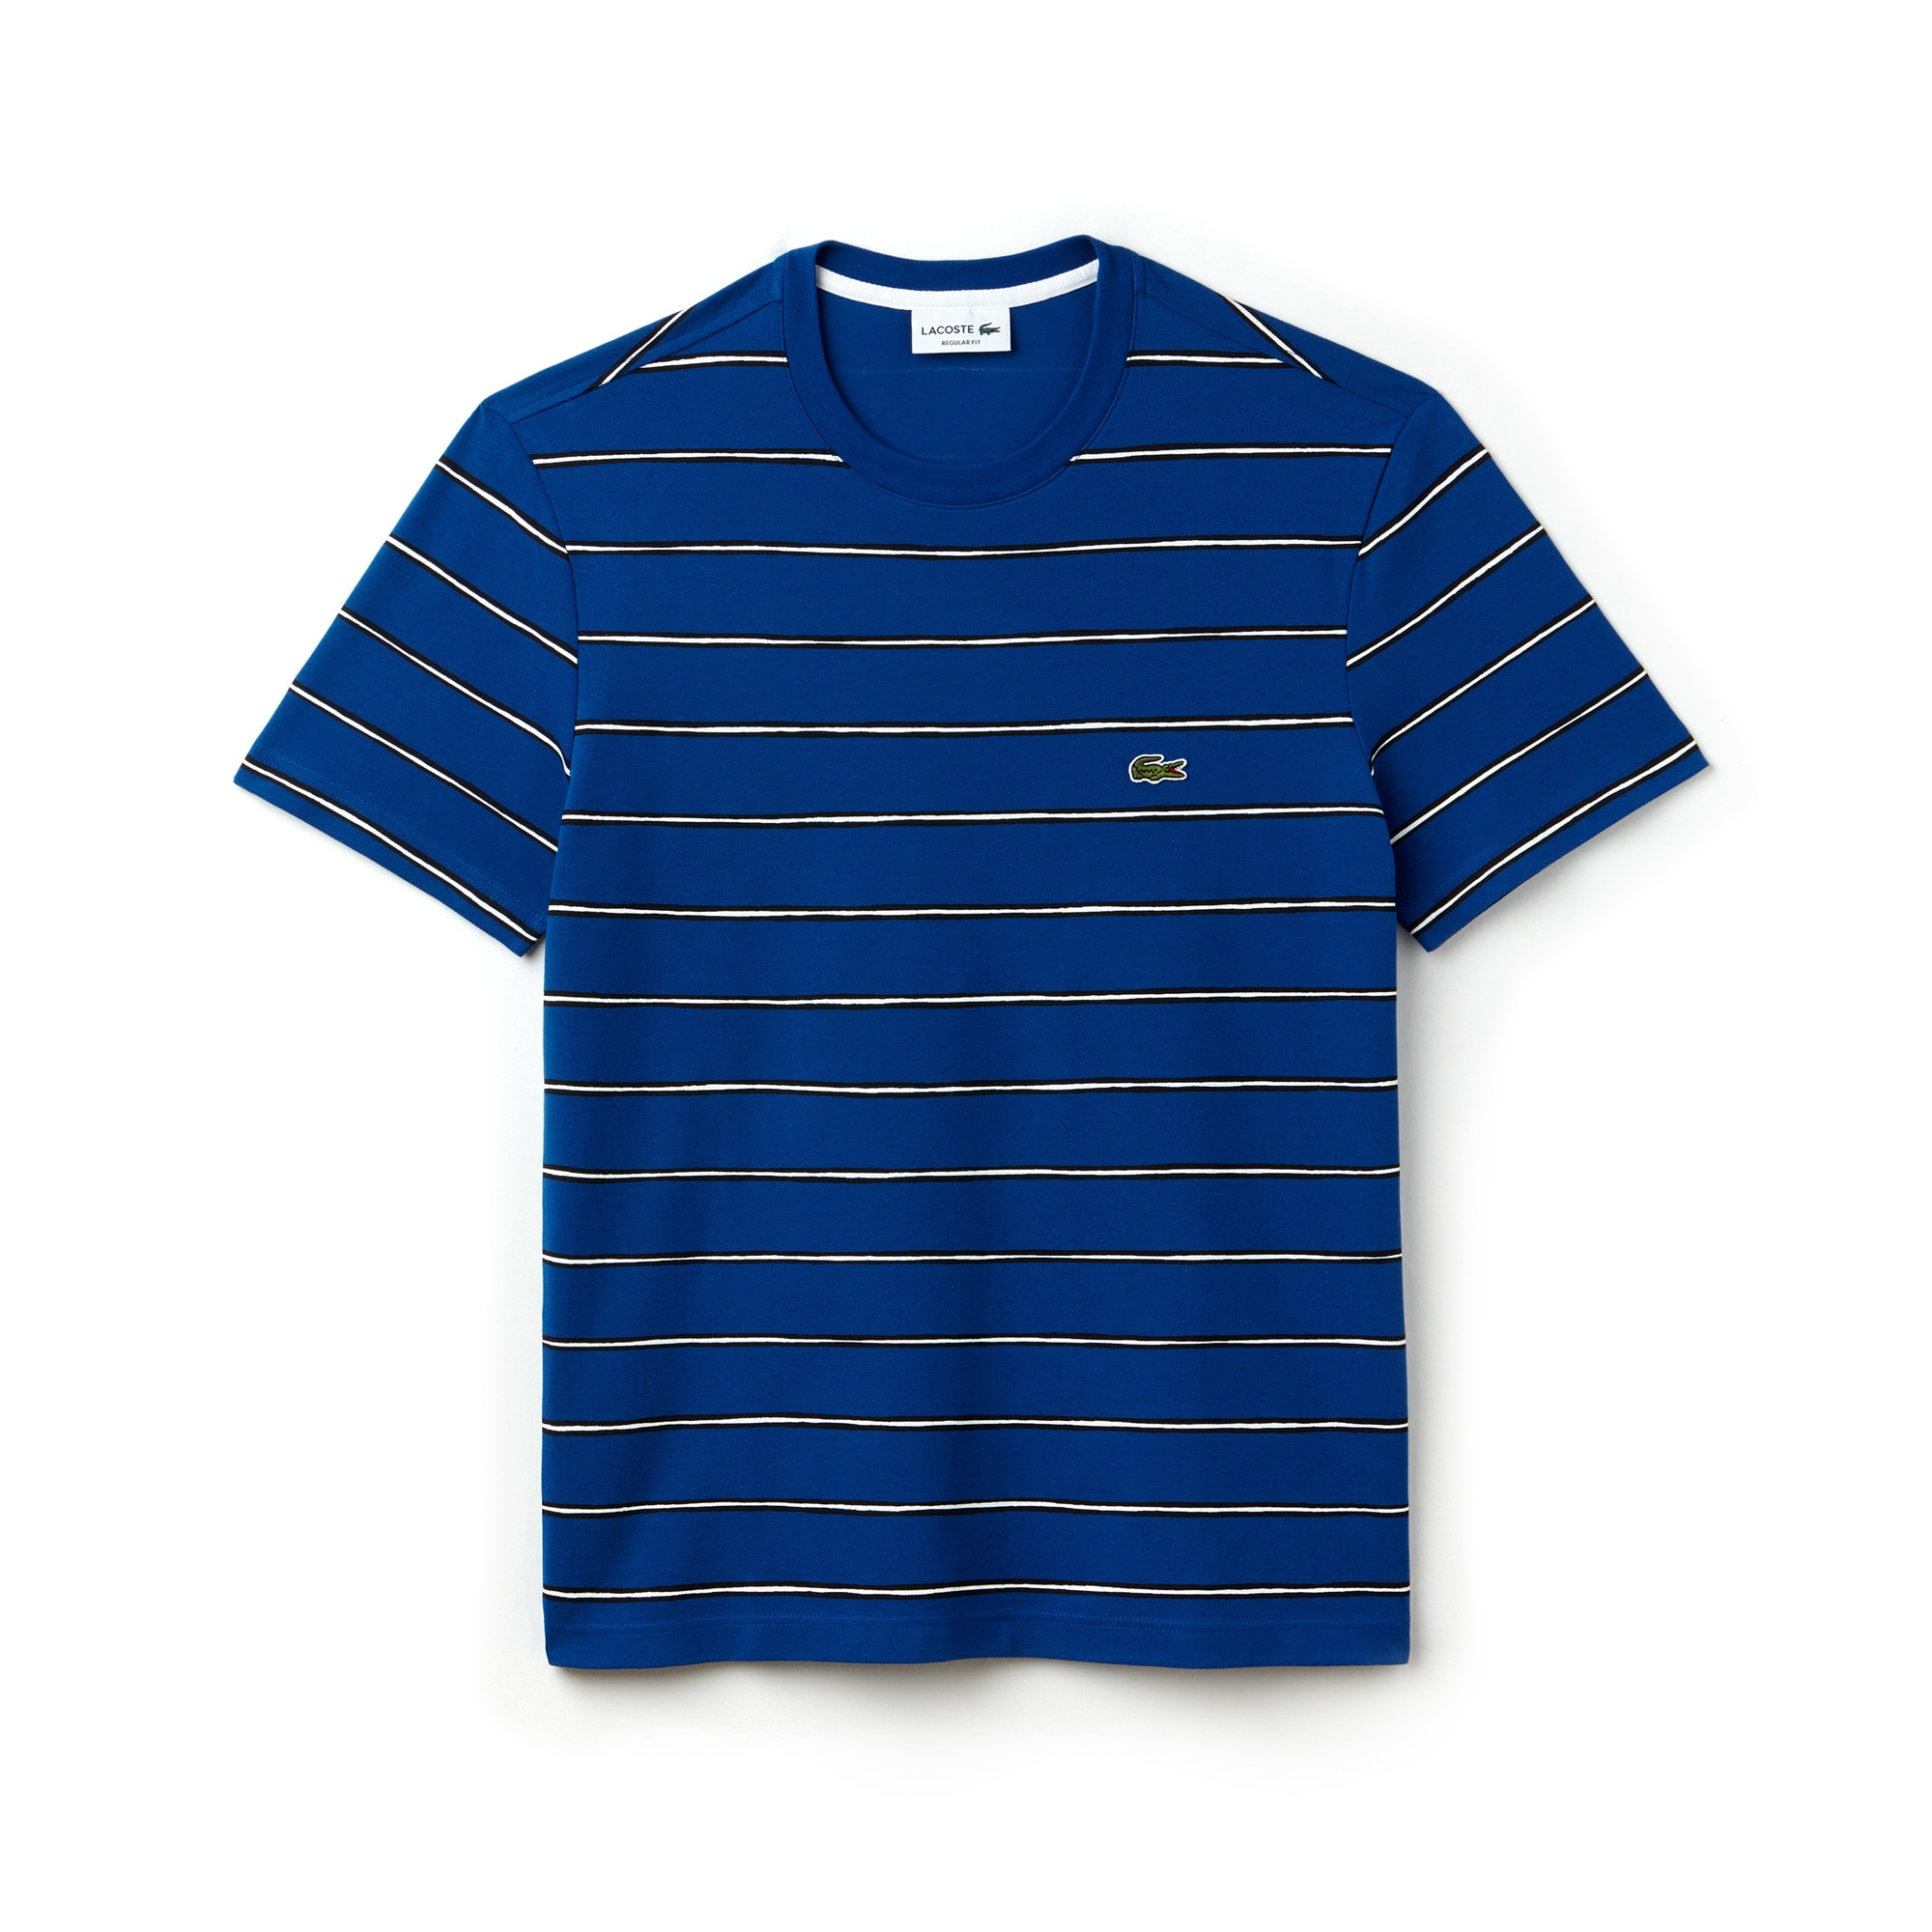 Men's Crew Neck Striped Print Cotton Mini Piqué T-shirt